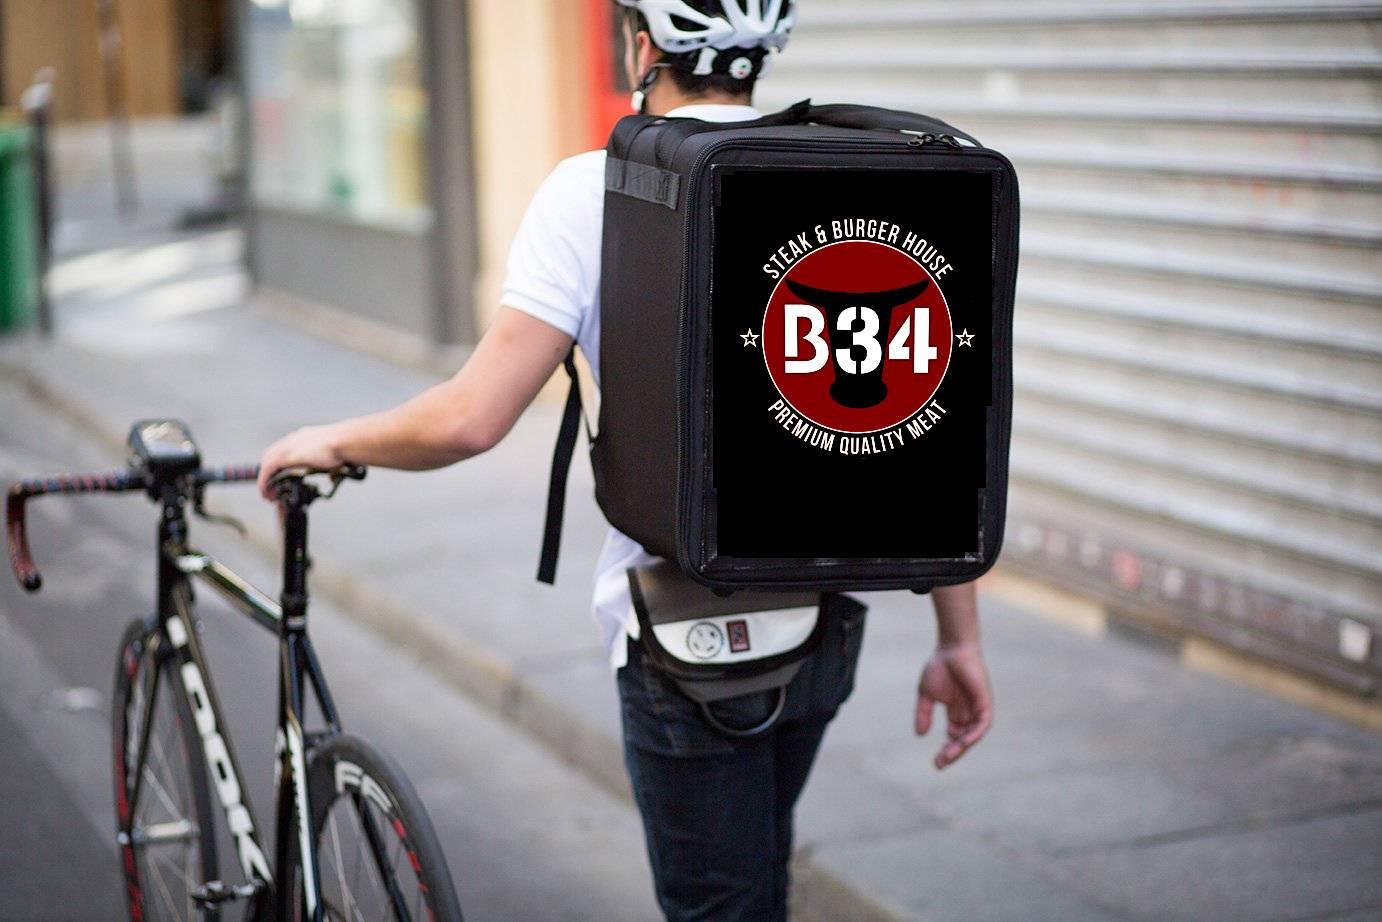 B34 Delivery